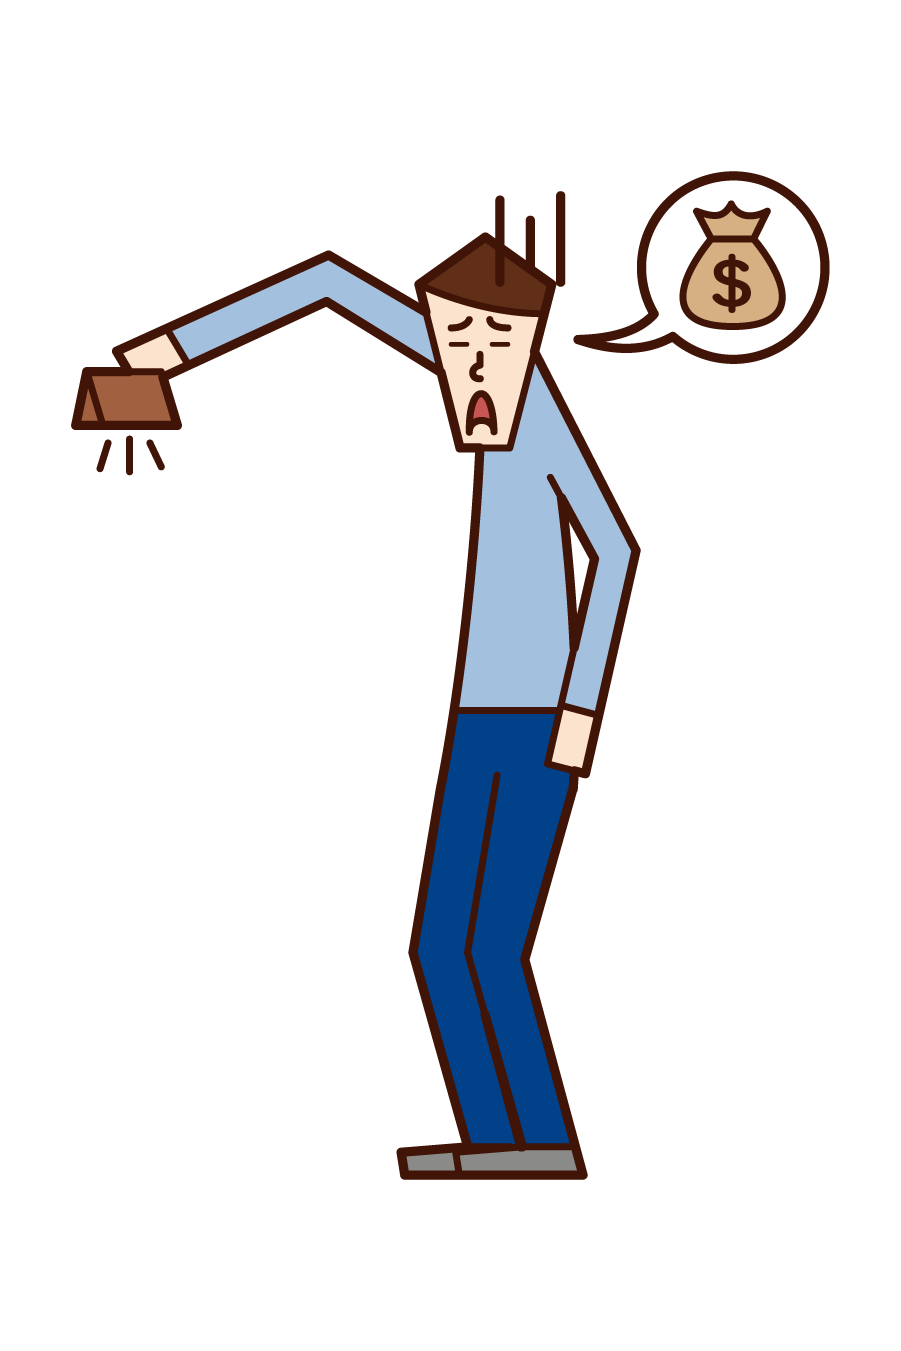 Illustration of a man who is out of money